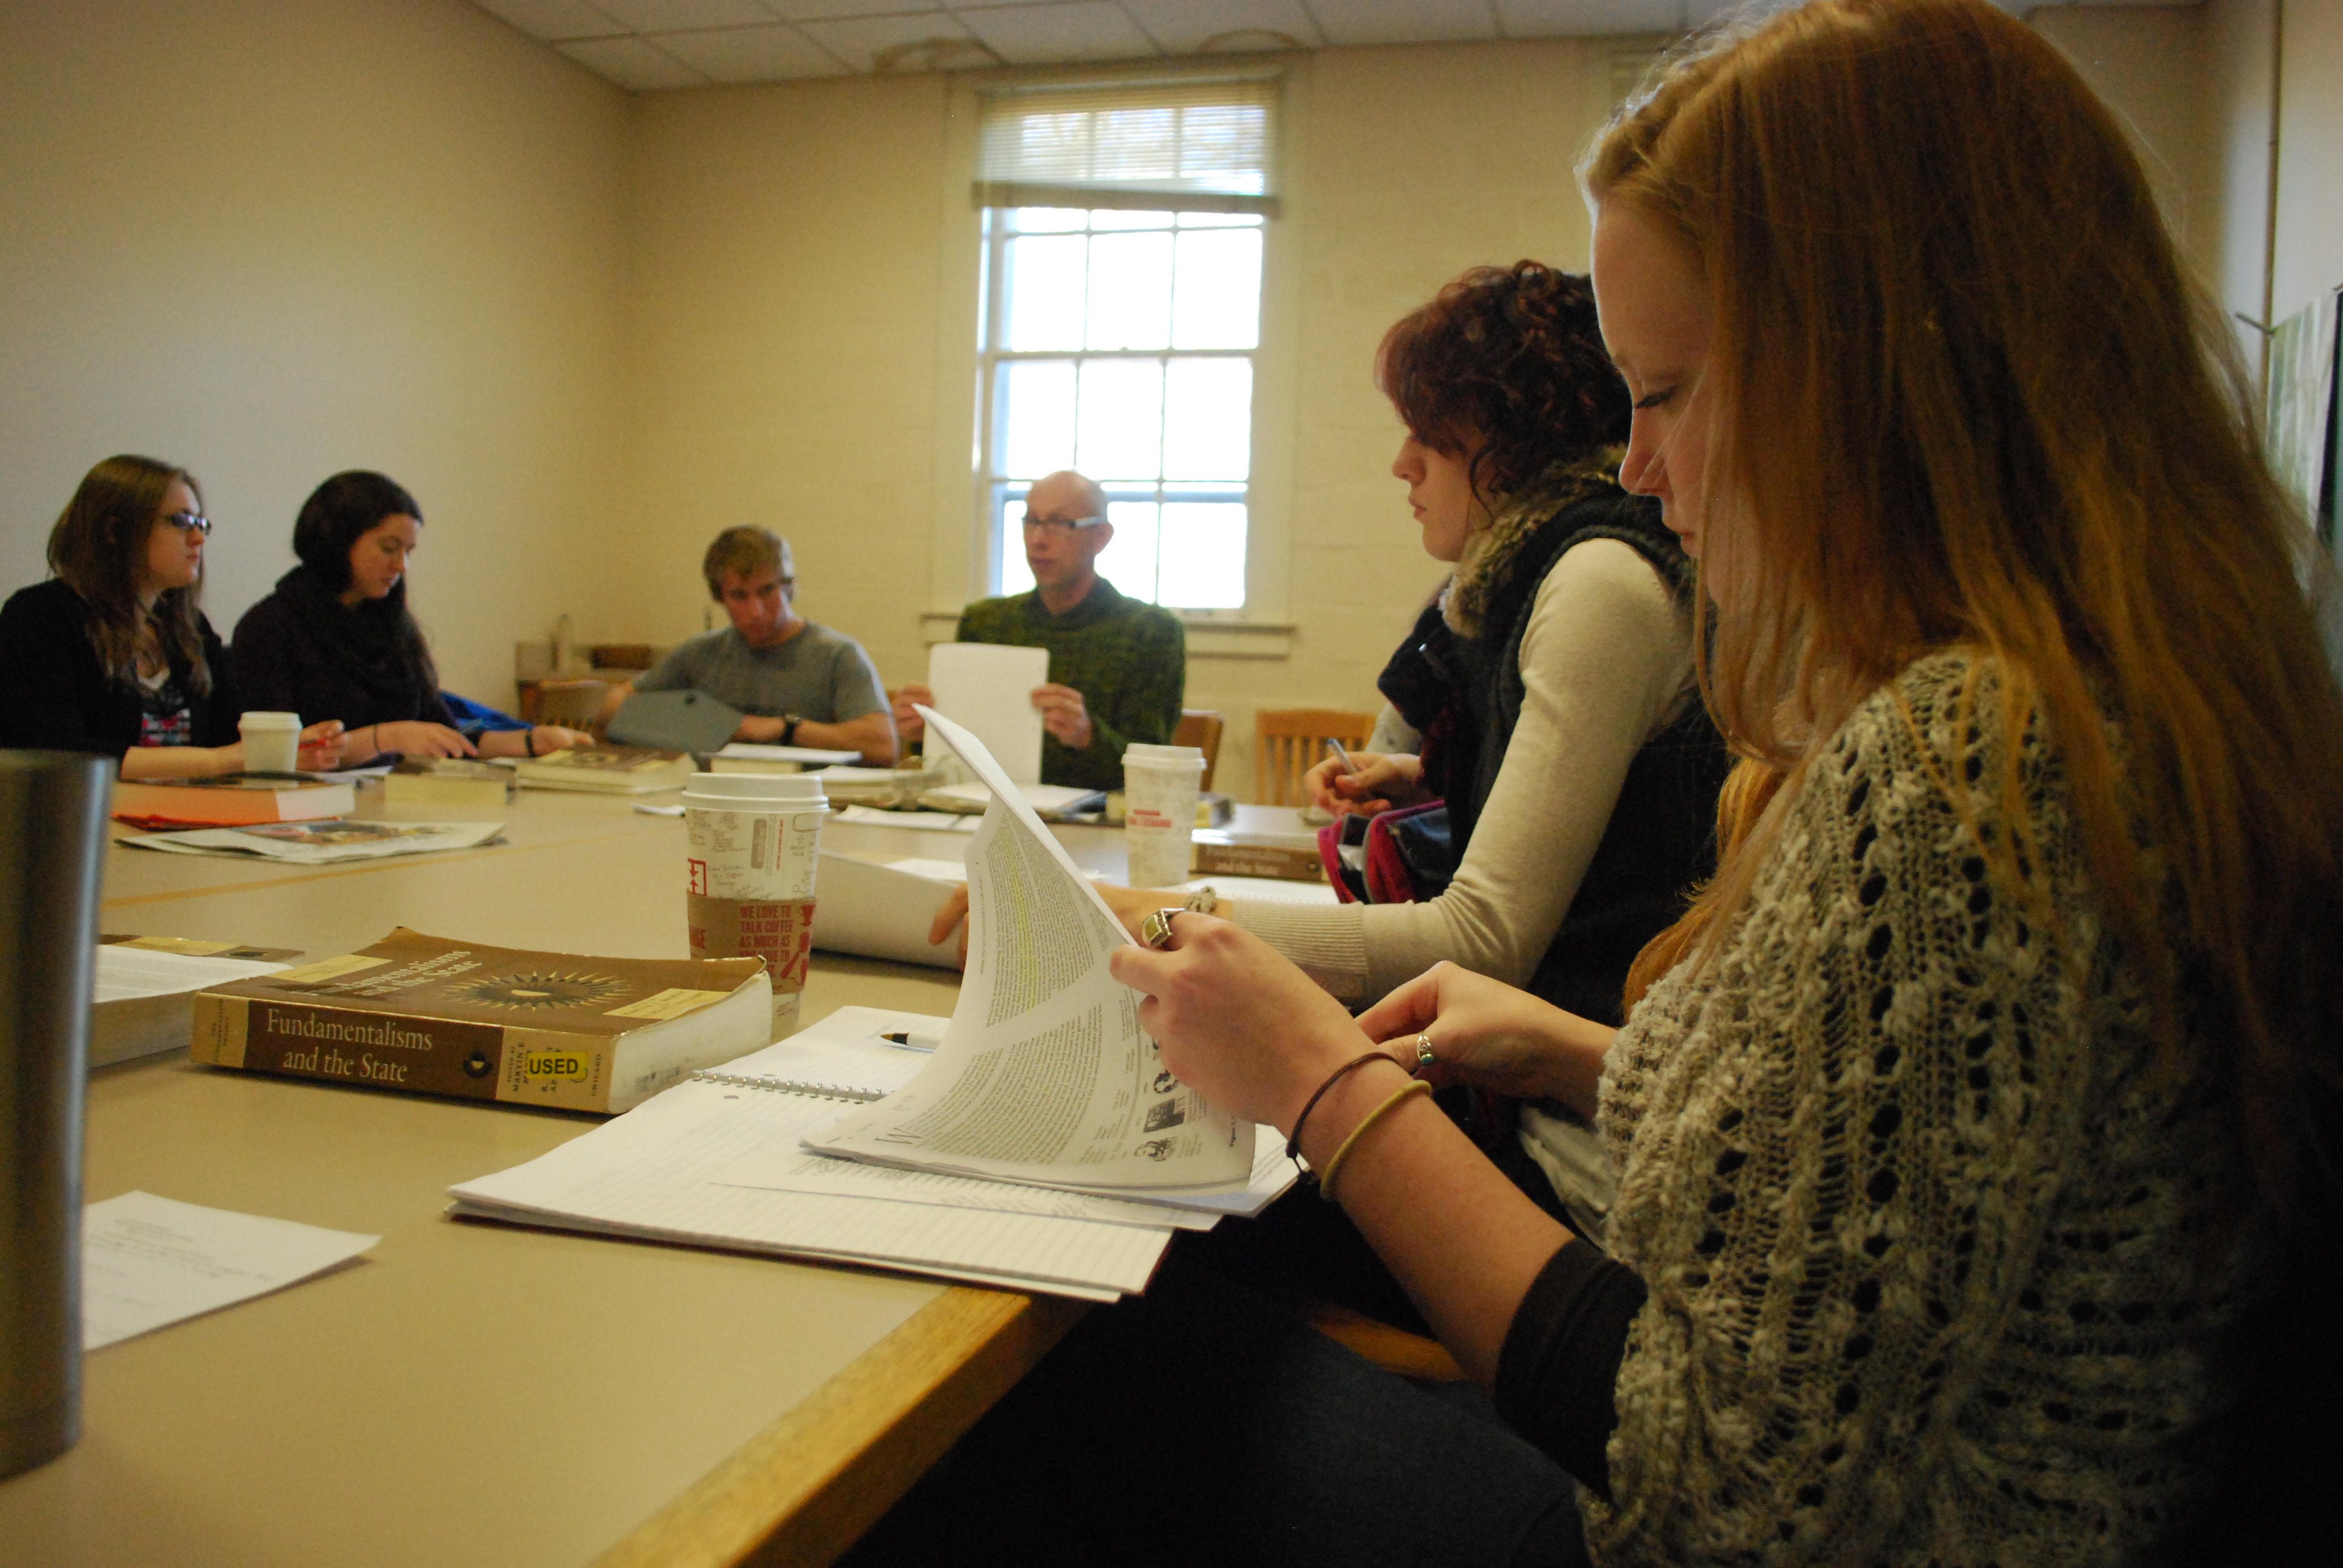 Professor Bjorn Krondofer teaches a political sutides class at a table with his students.